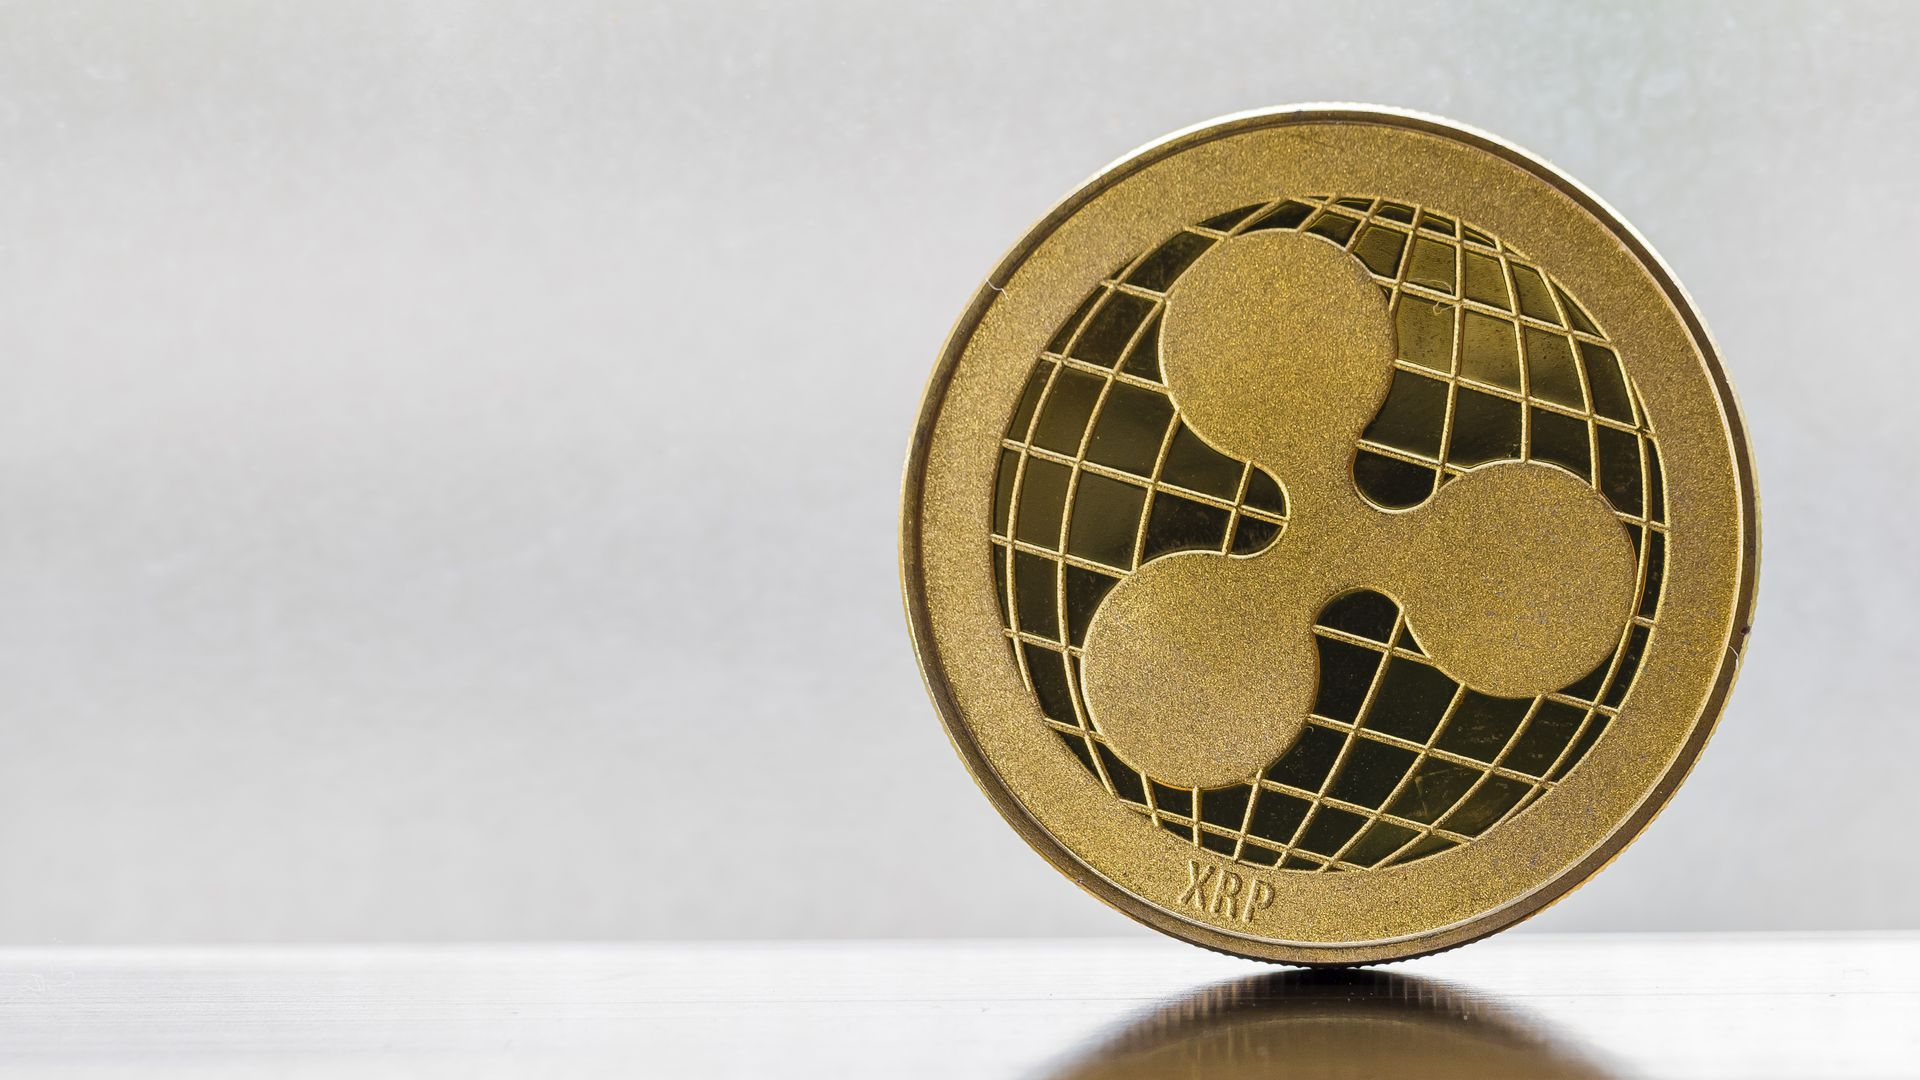 Coin with Ripple's XRP digital currency logo.